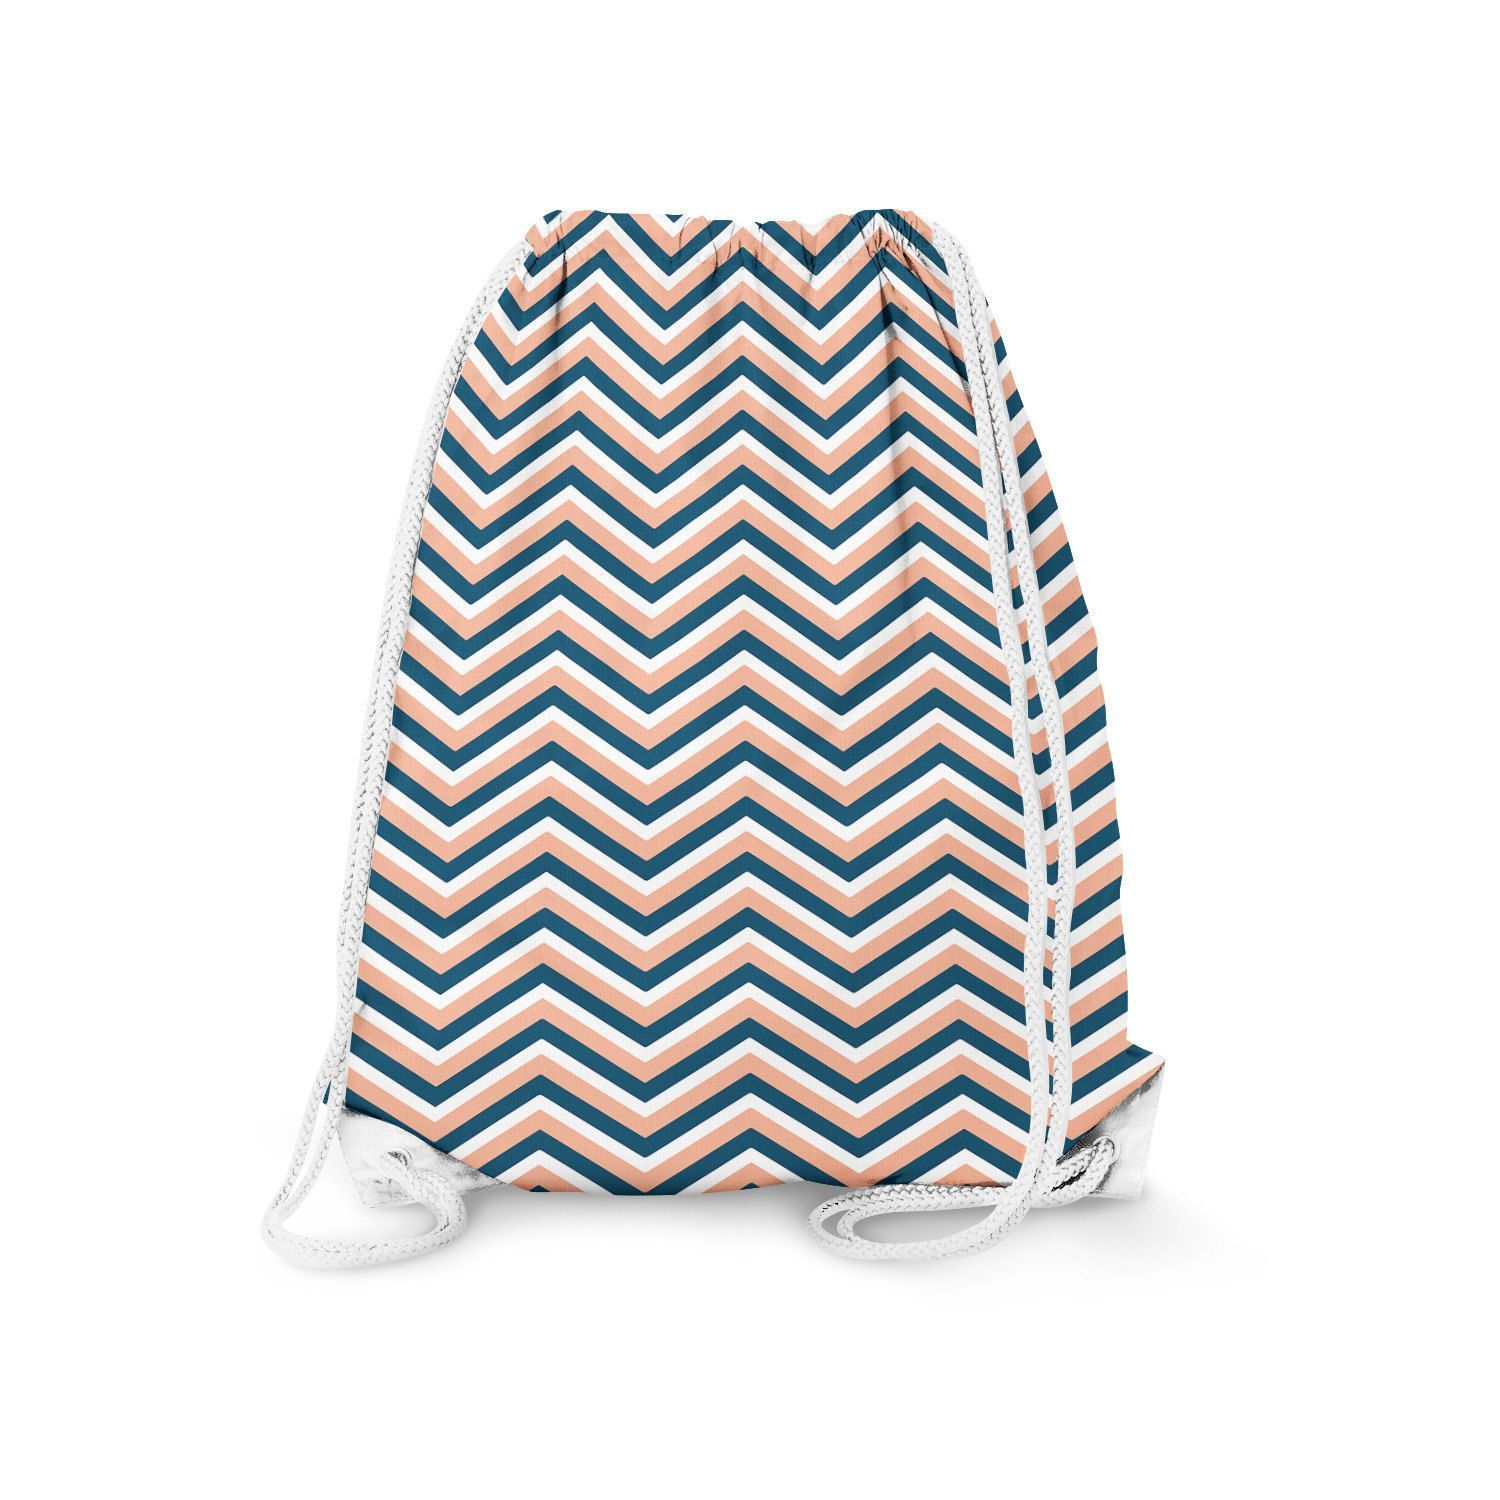 Coral Navy Chevron Drawstring Bag  Heavy Cotton Canvas